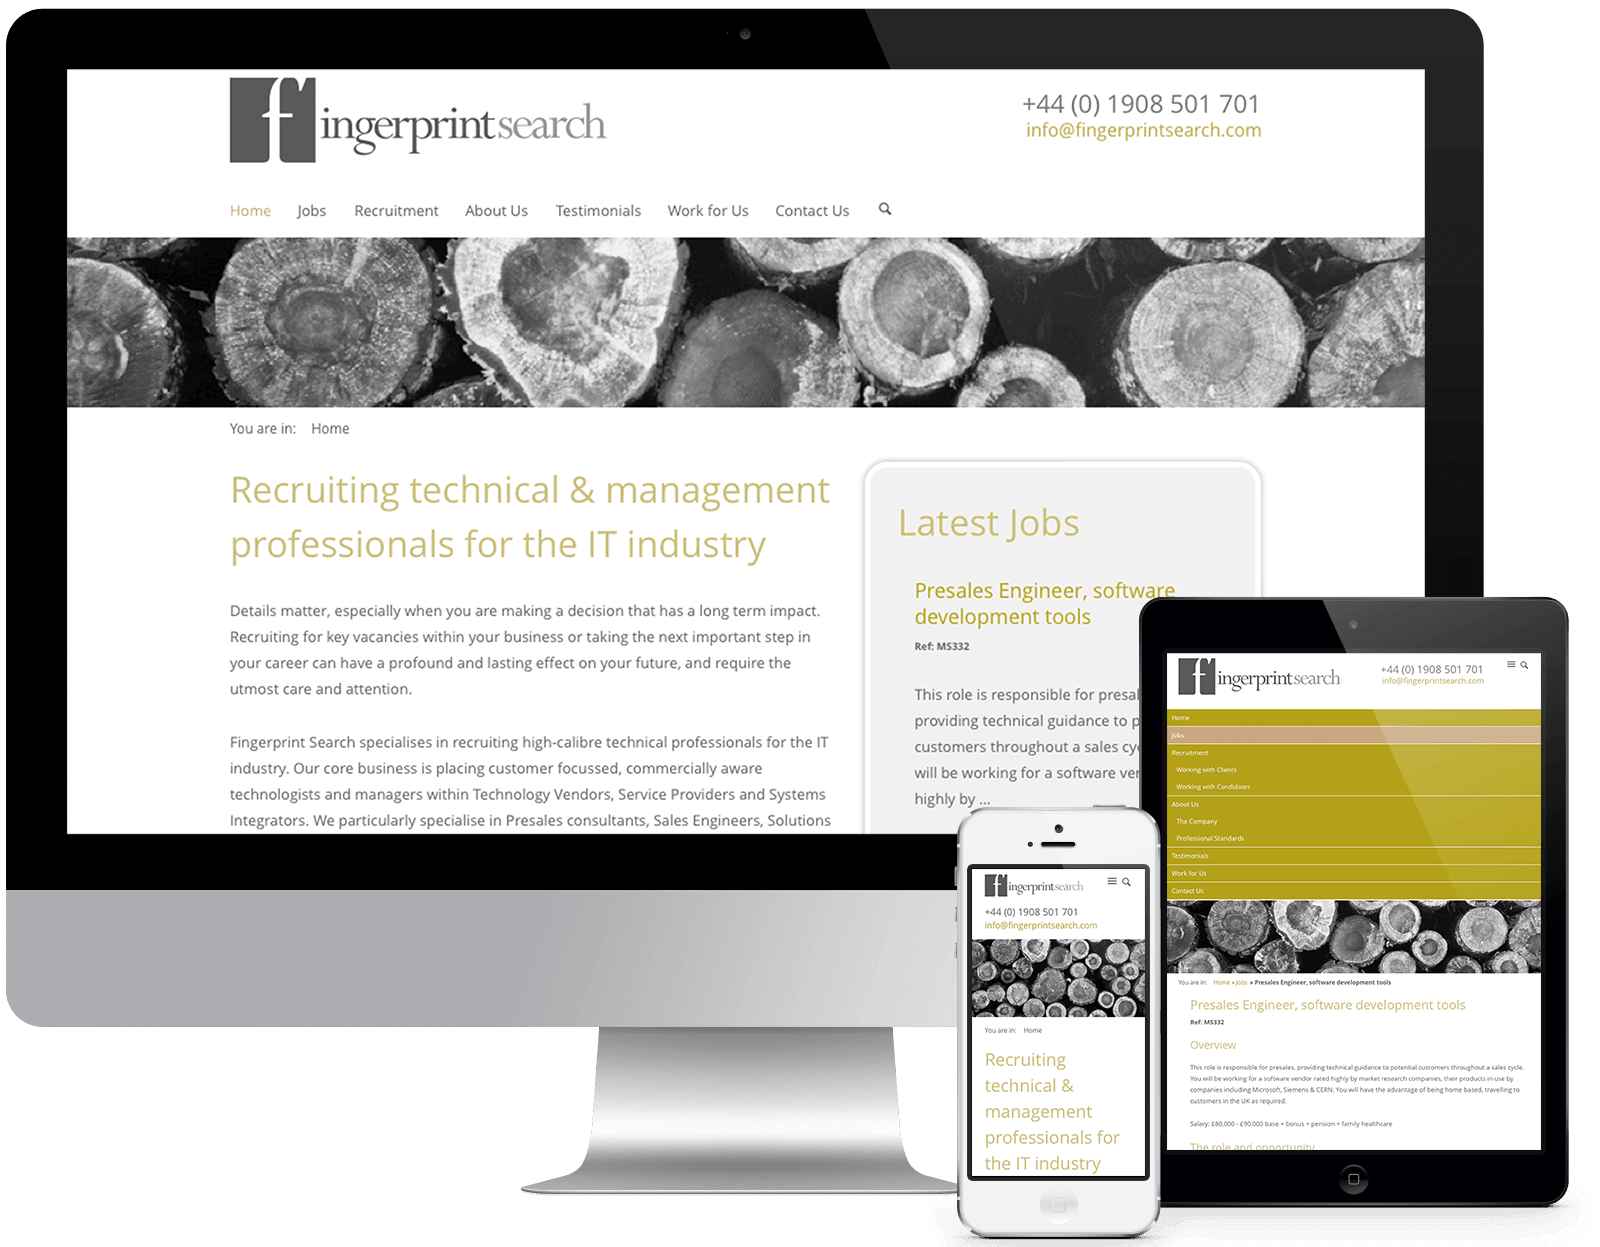 Fingerprint Search - Visit the Website